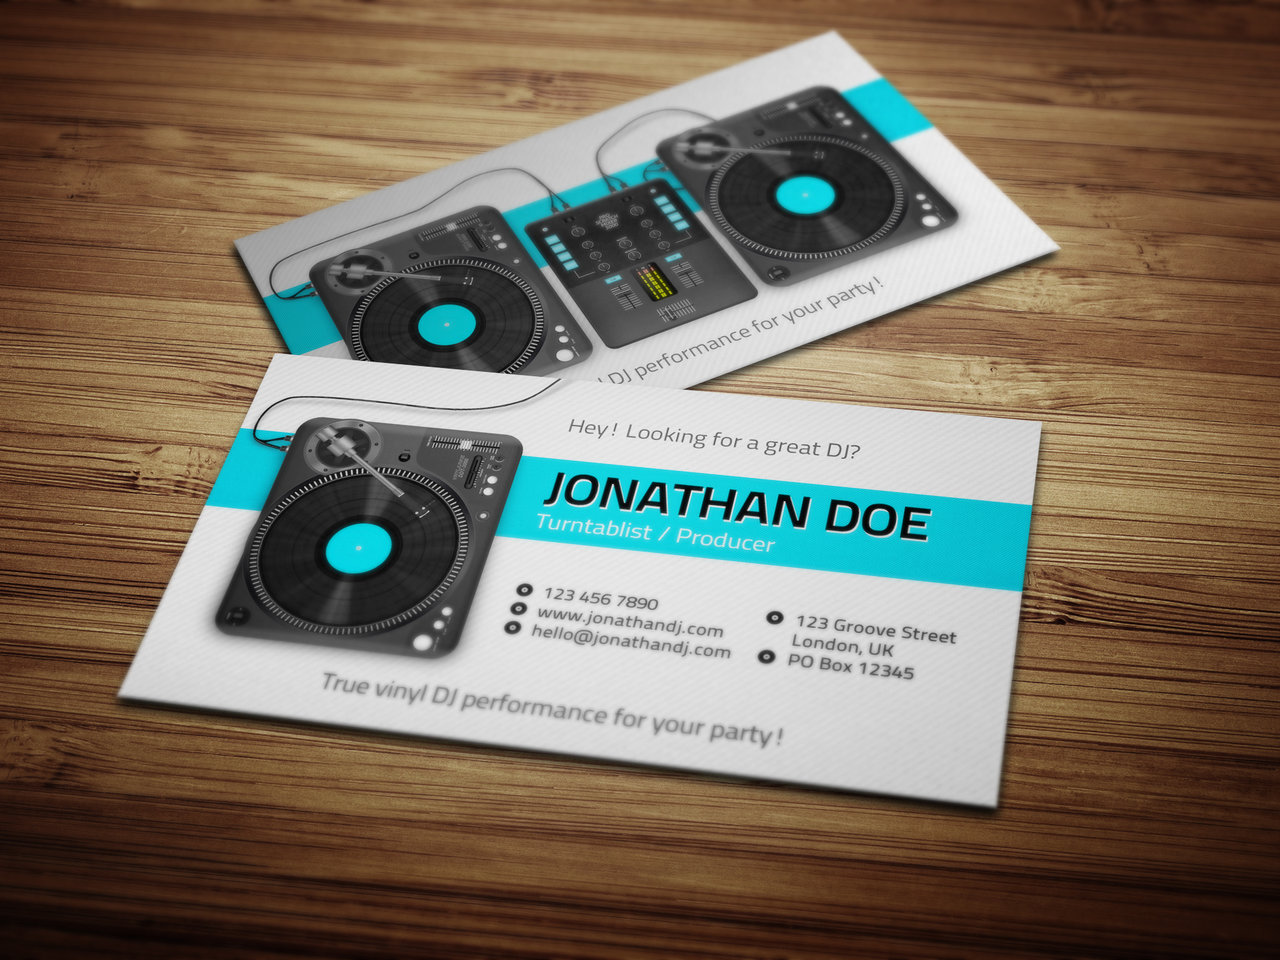 Djing business cards robertottni djing business cards flashek Image collections